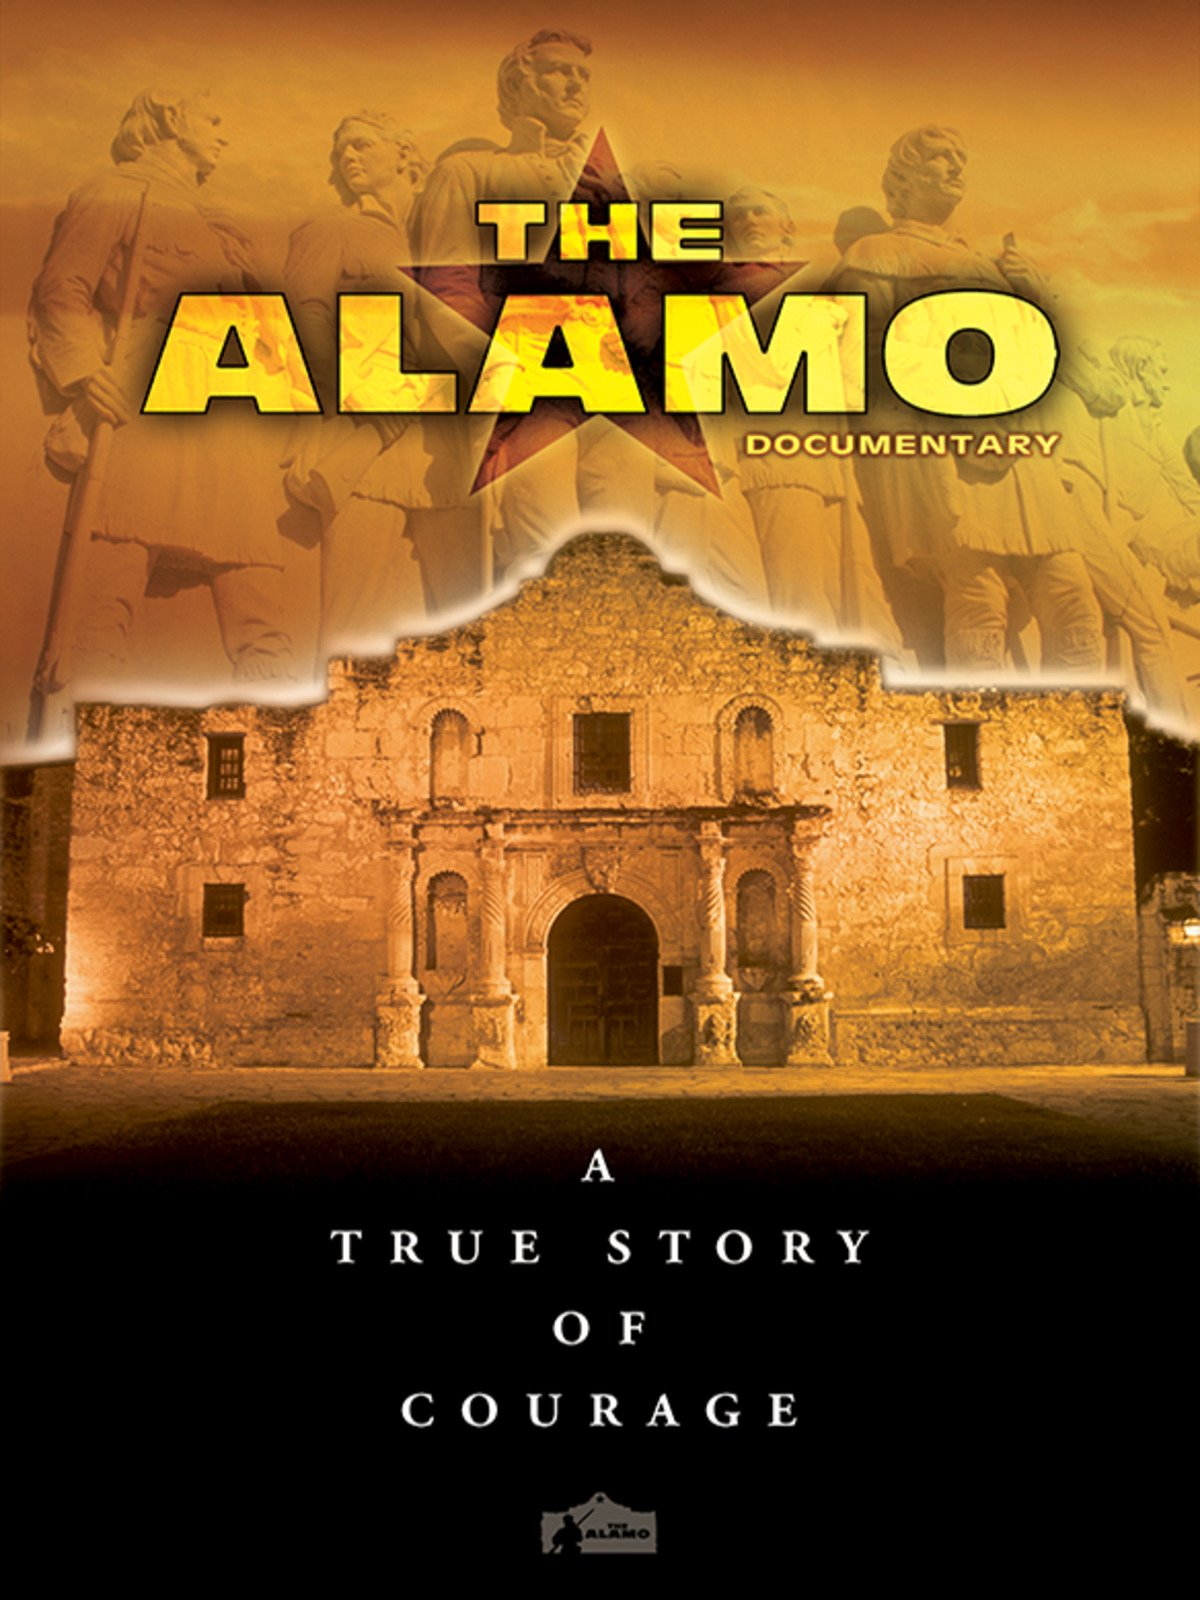 The Alamo: A True Story of Courage